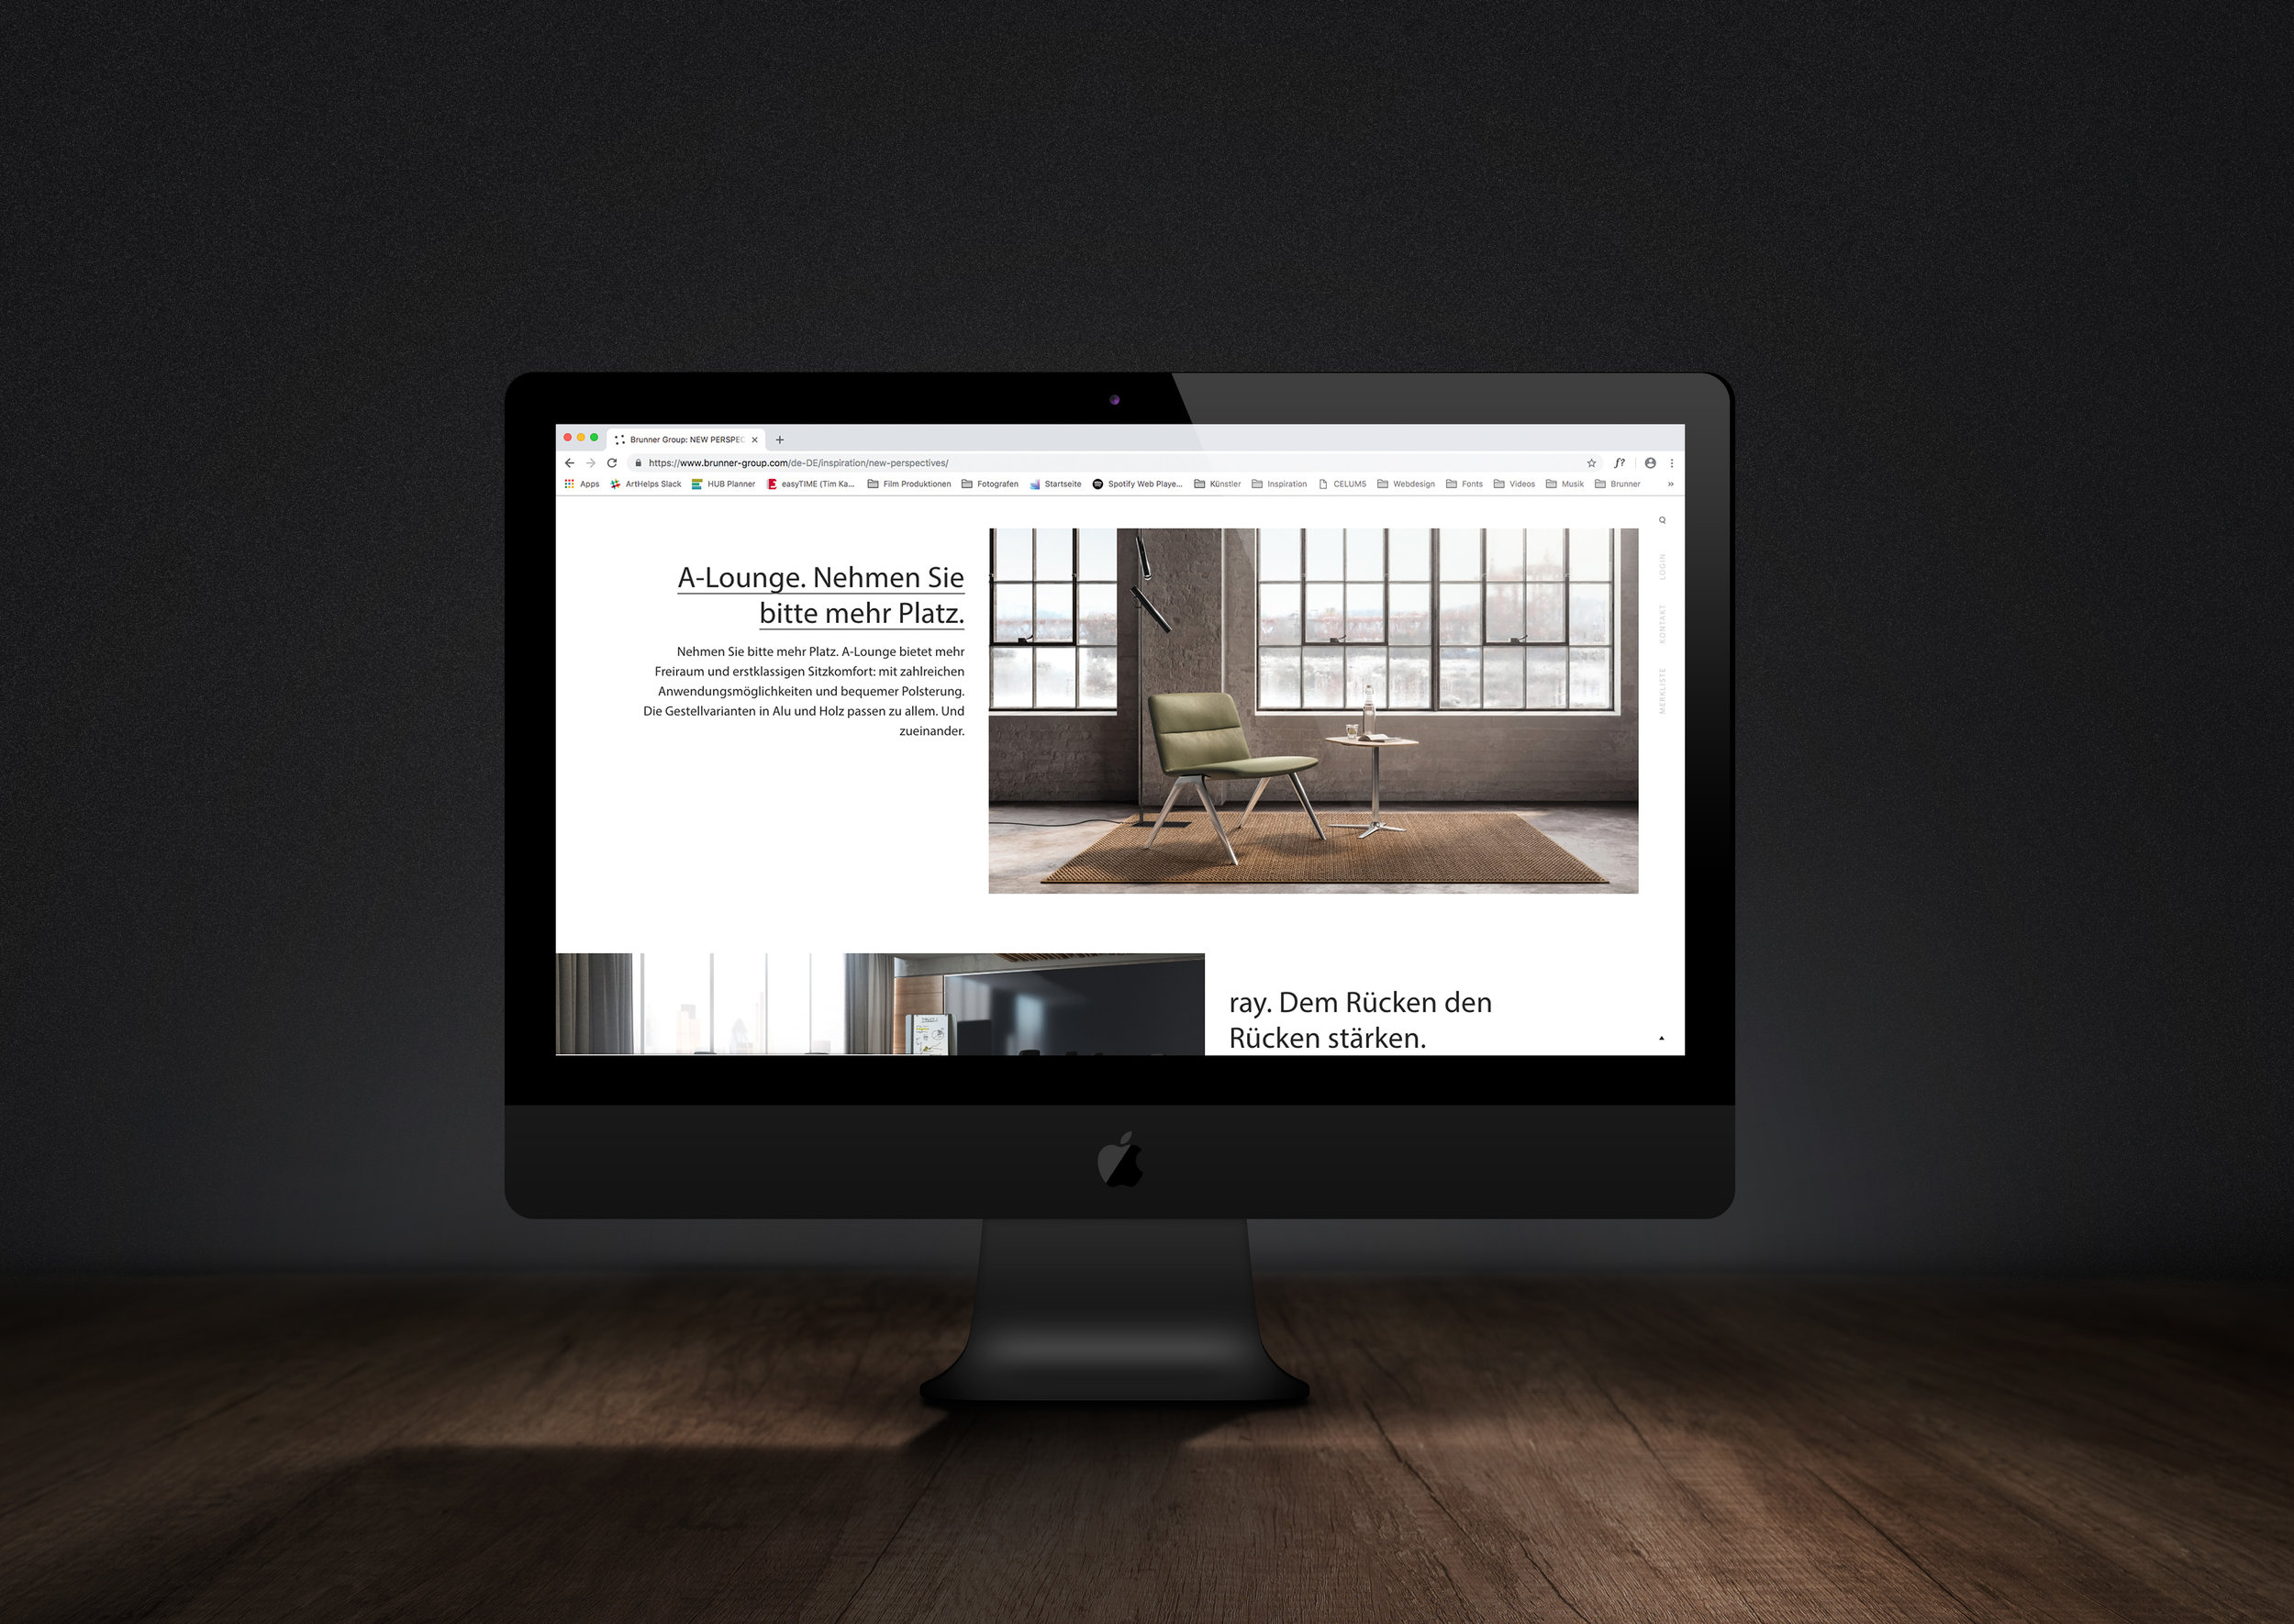 181031_brunner_website_mockup_3